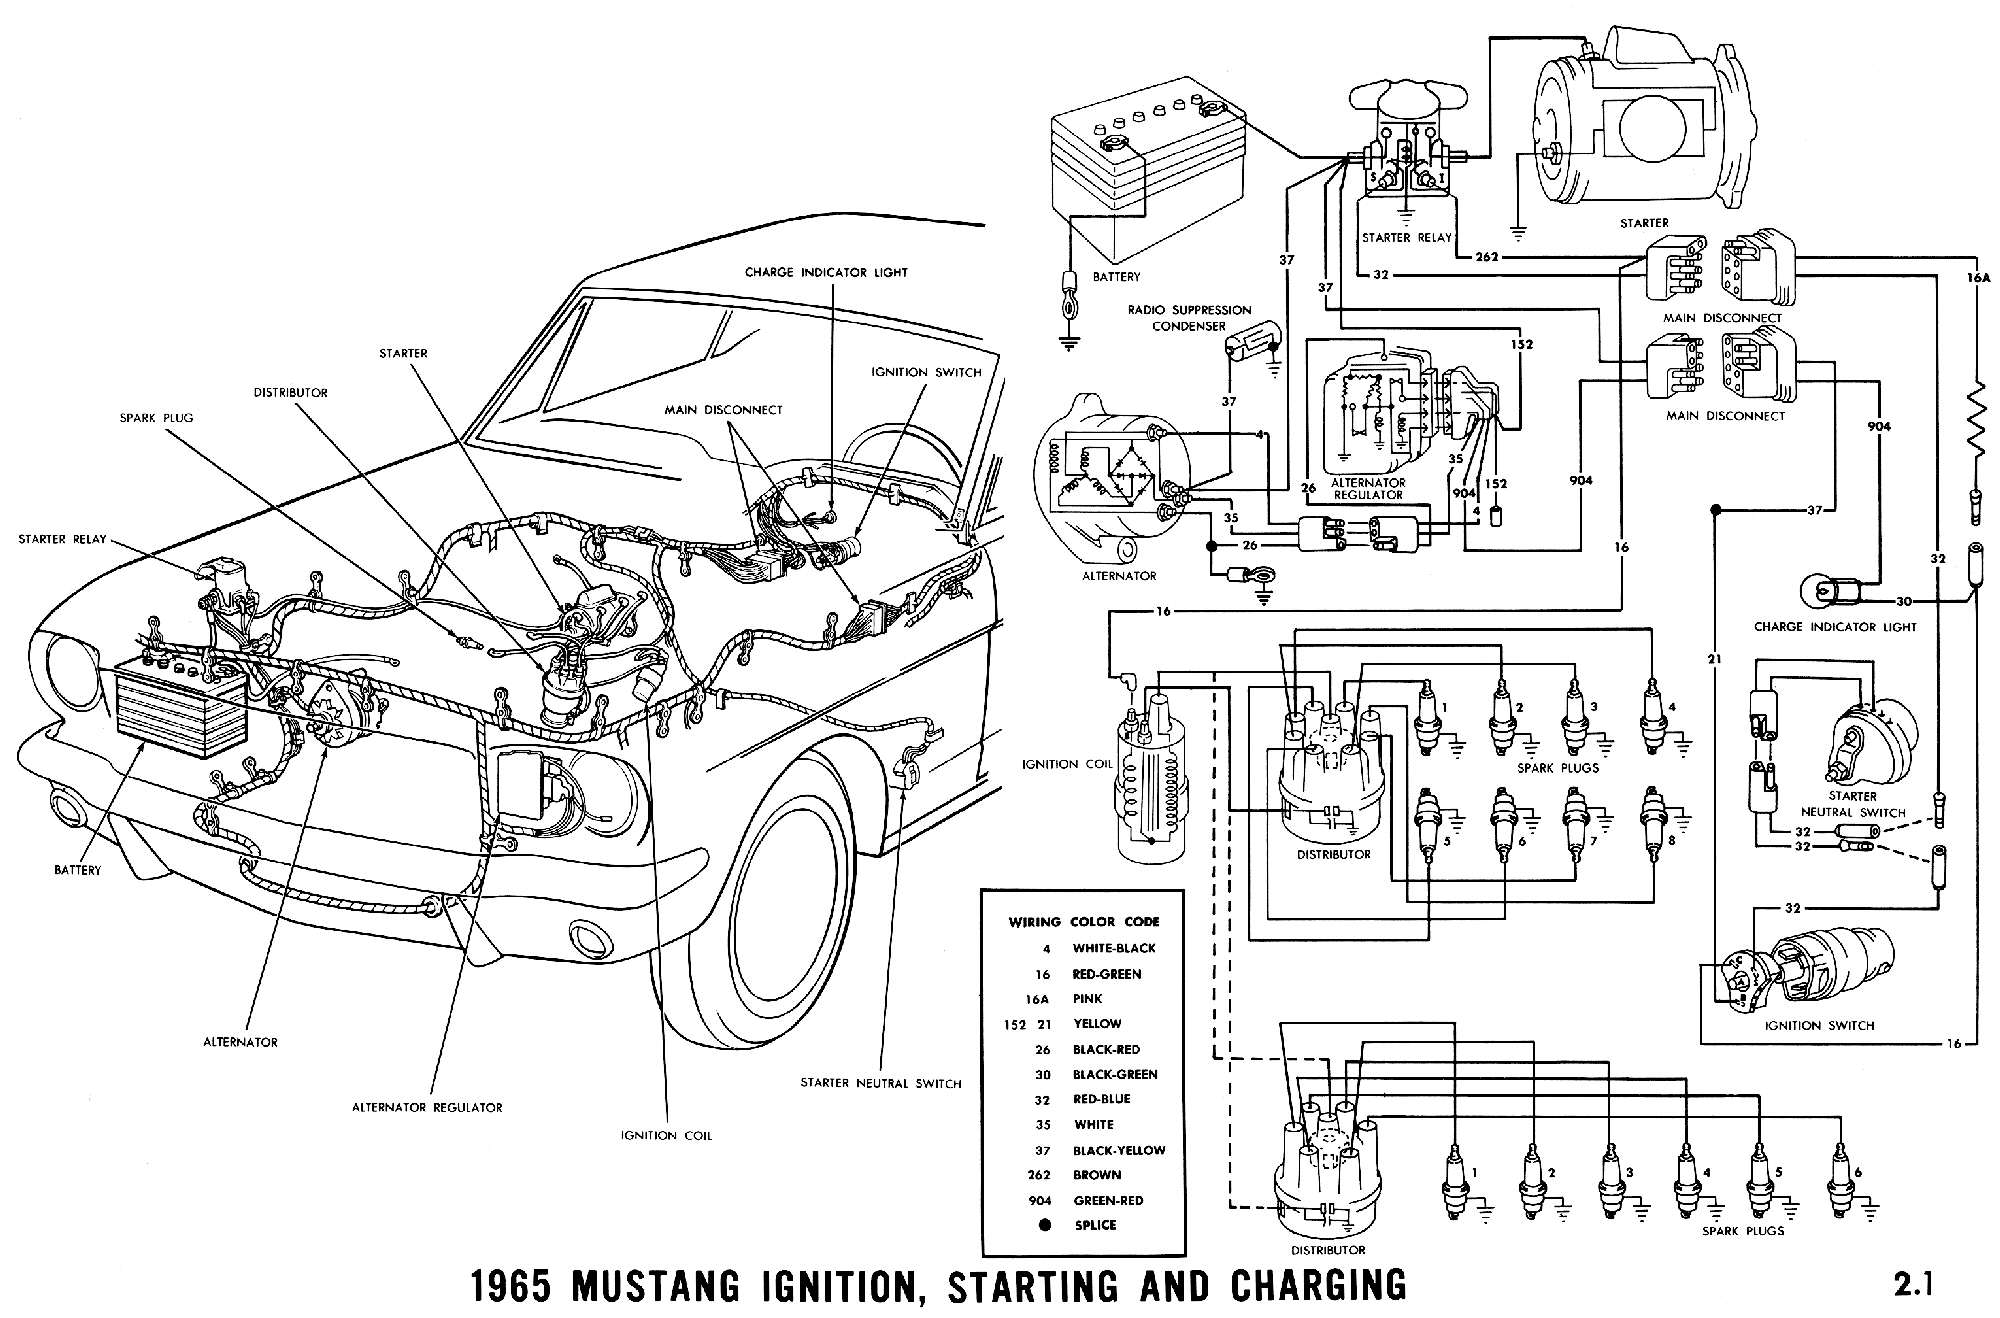 1965c 1965 mustang wiring diagrams average joe restoration 1967 mustang ignition wiring diagram at soozxer.org